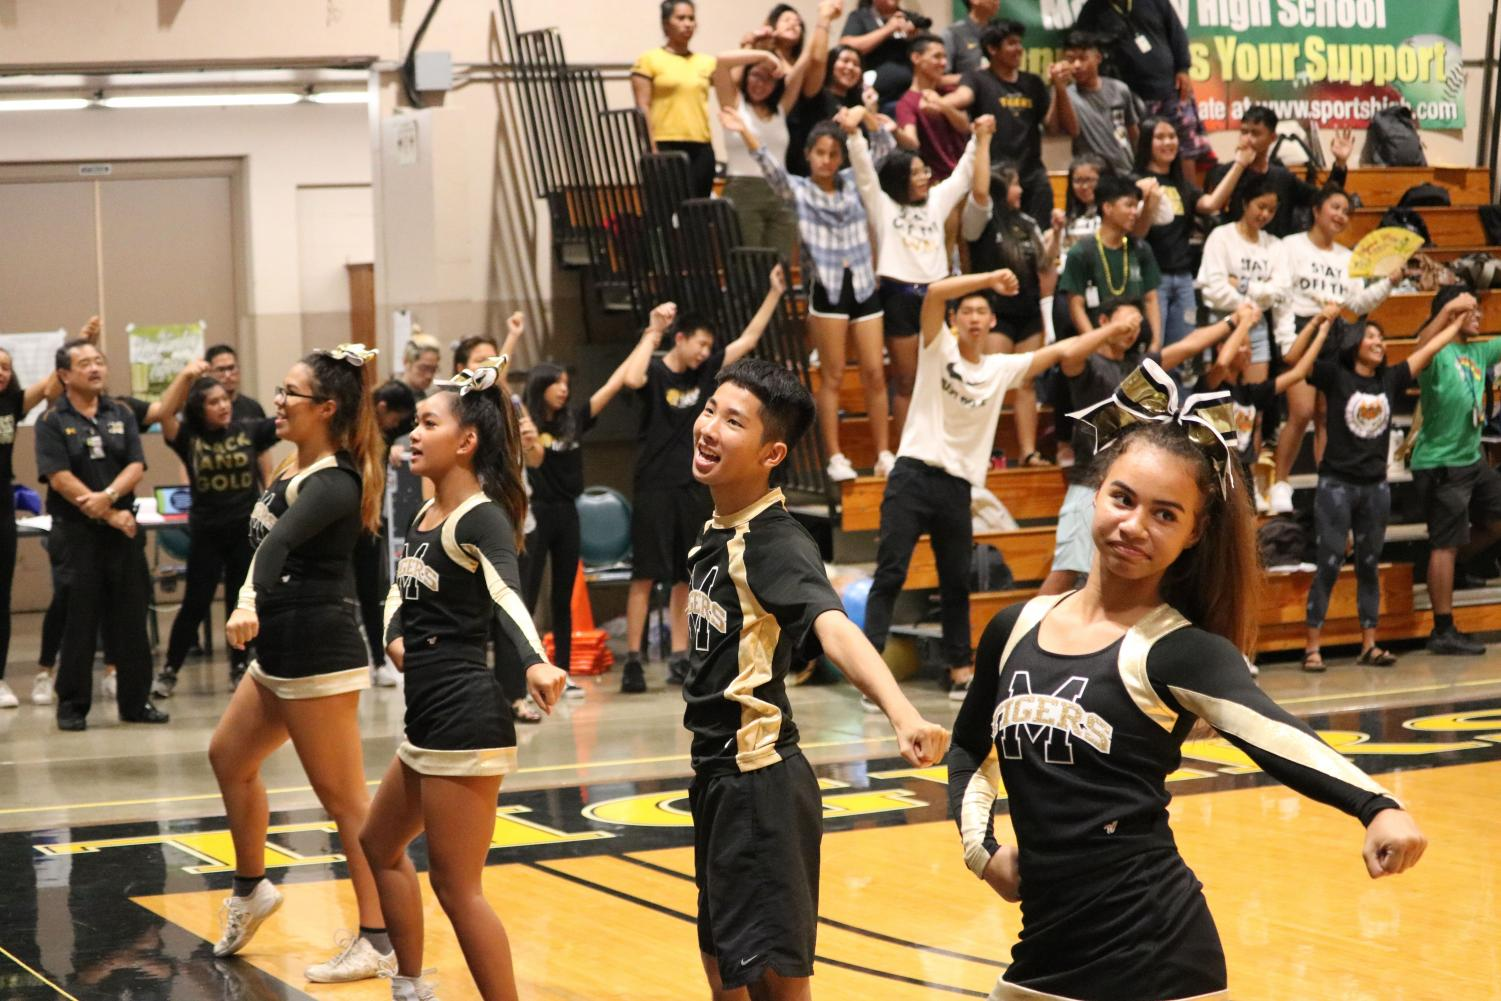 The cheerleaders lead the students in Black and Gold with their routine at one of the assemblies this year.